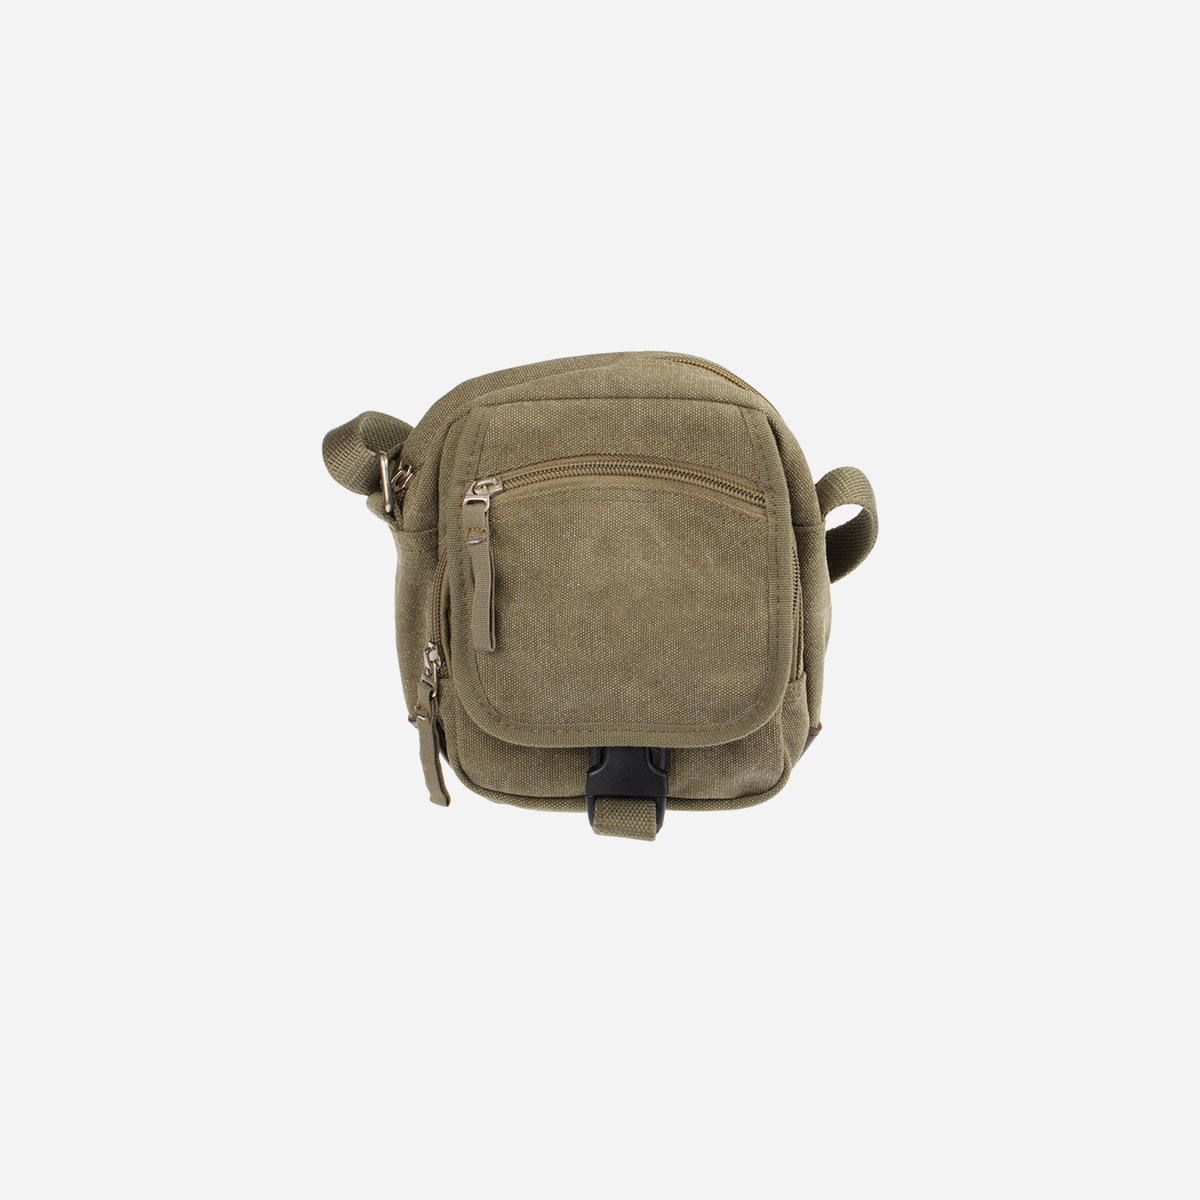 Men's-Canvas-Shoulder-Bag-isolated-on-white-background